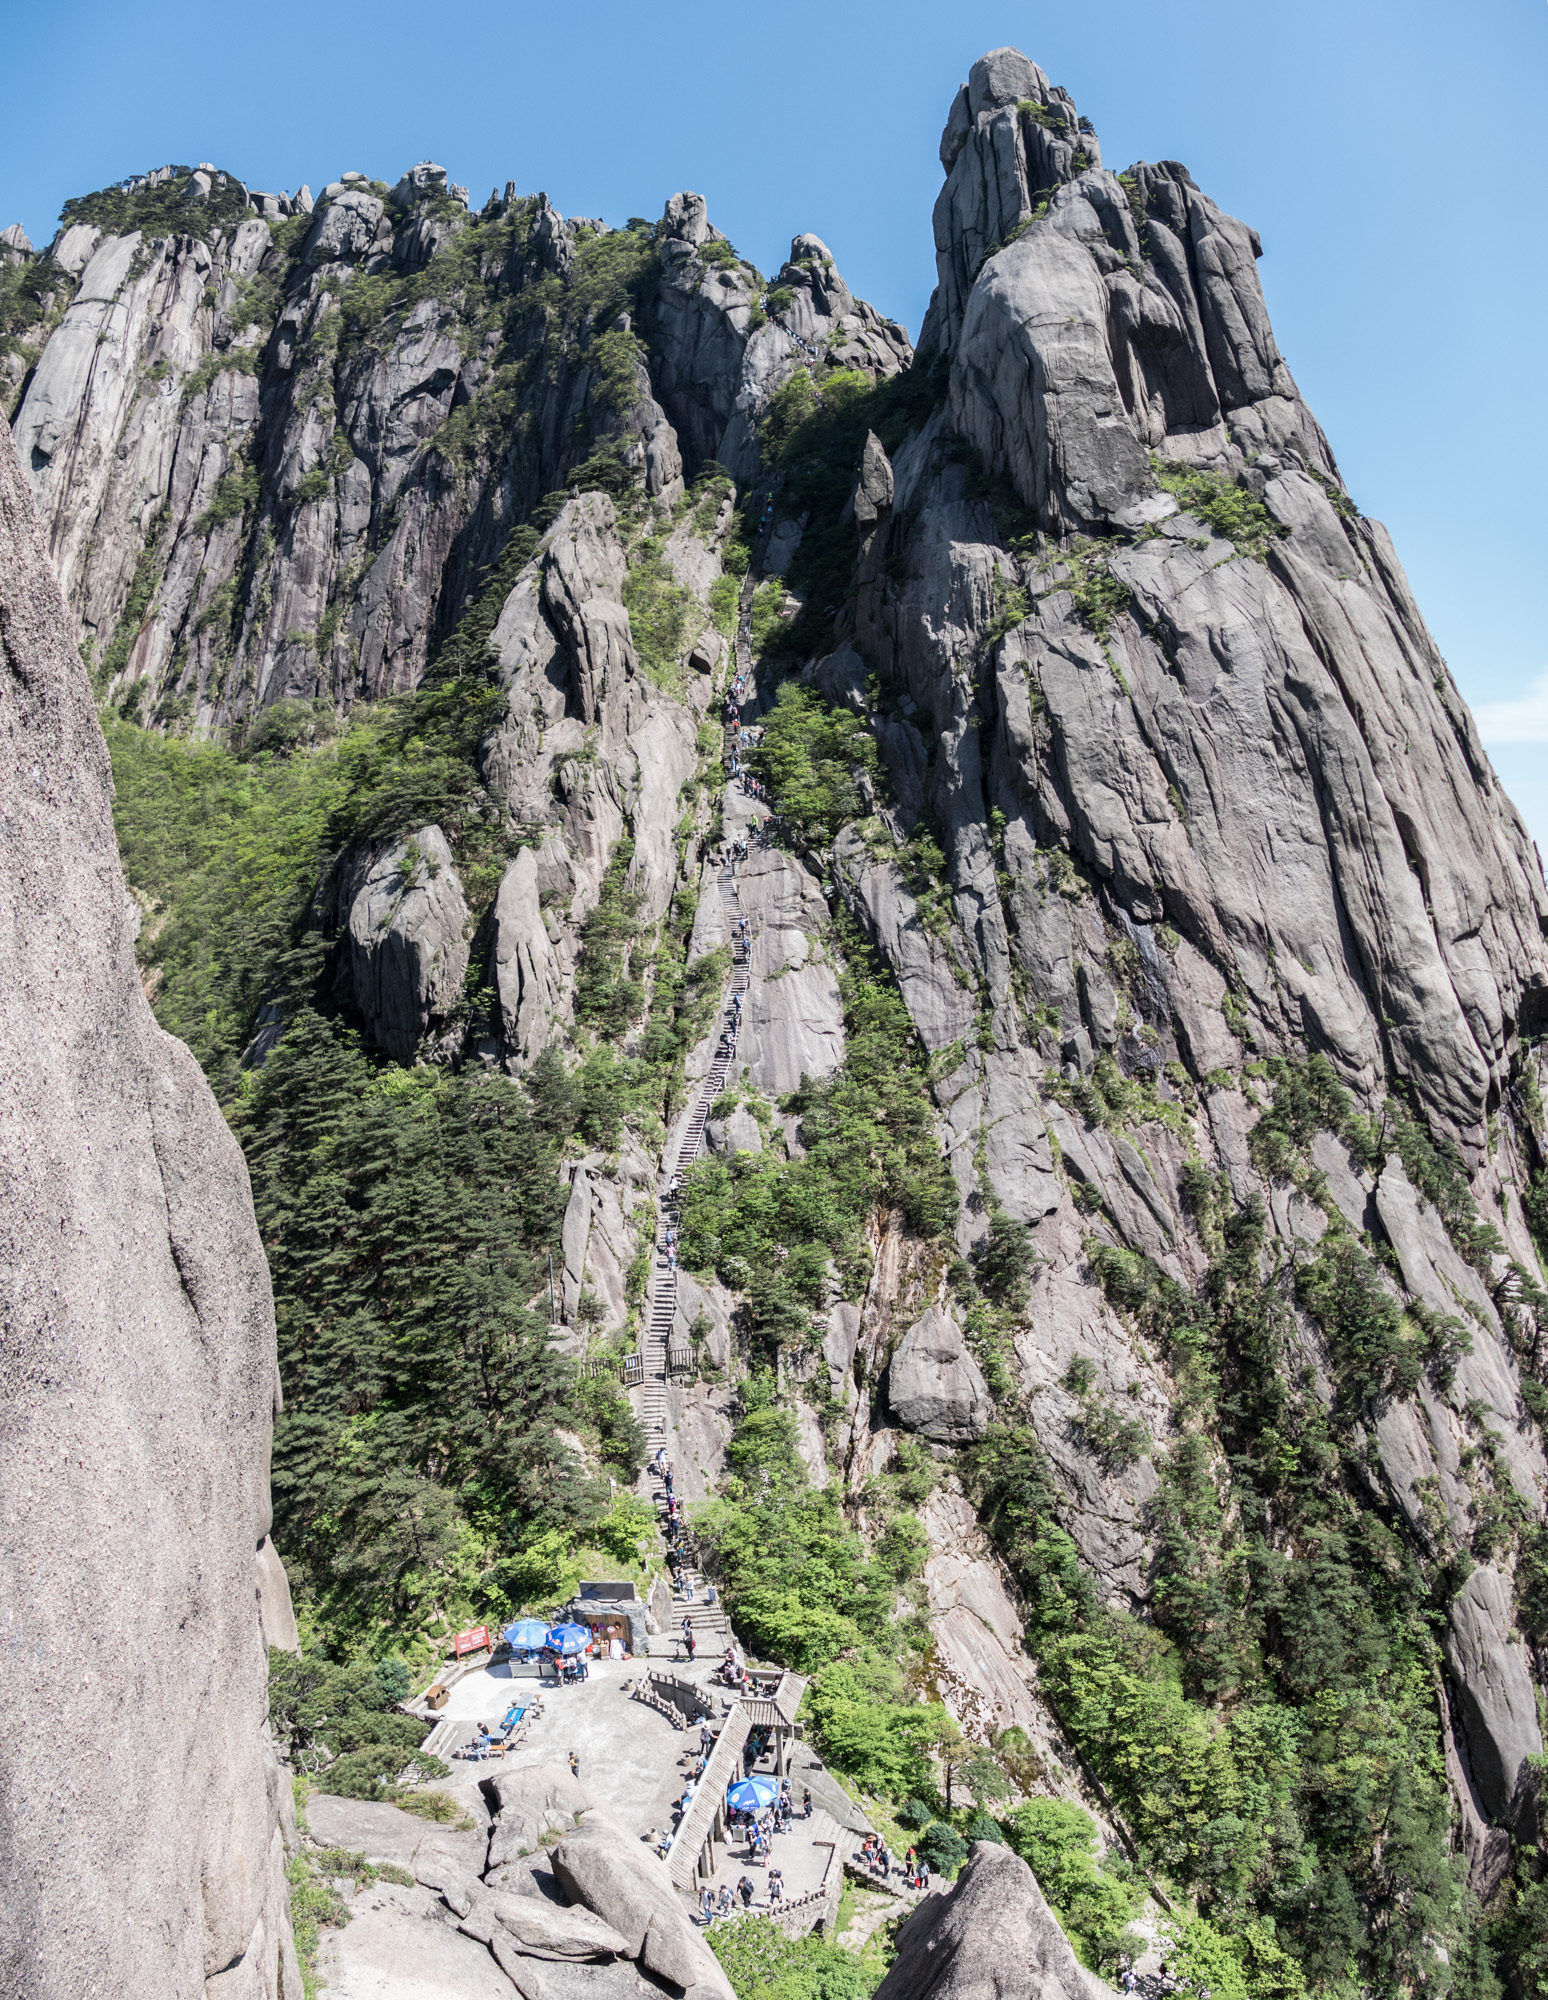 Vertical panorama of Heavenly Capital Peak, an impressive upward climb. See the line of hikers snaking up to the peak.